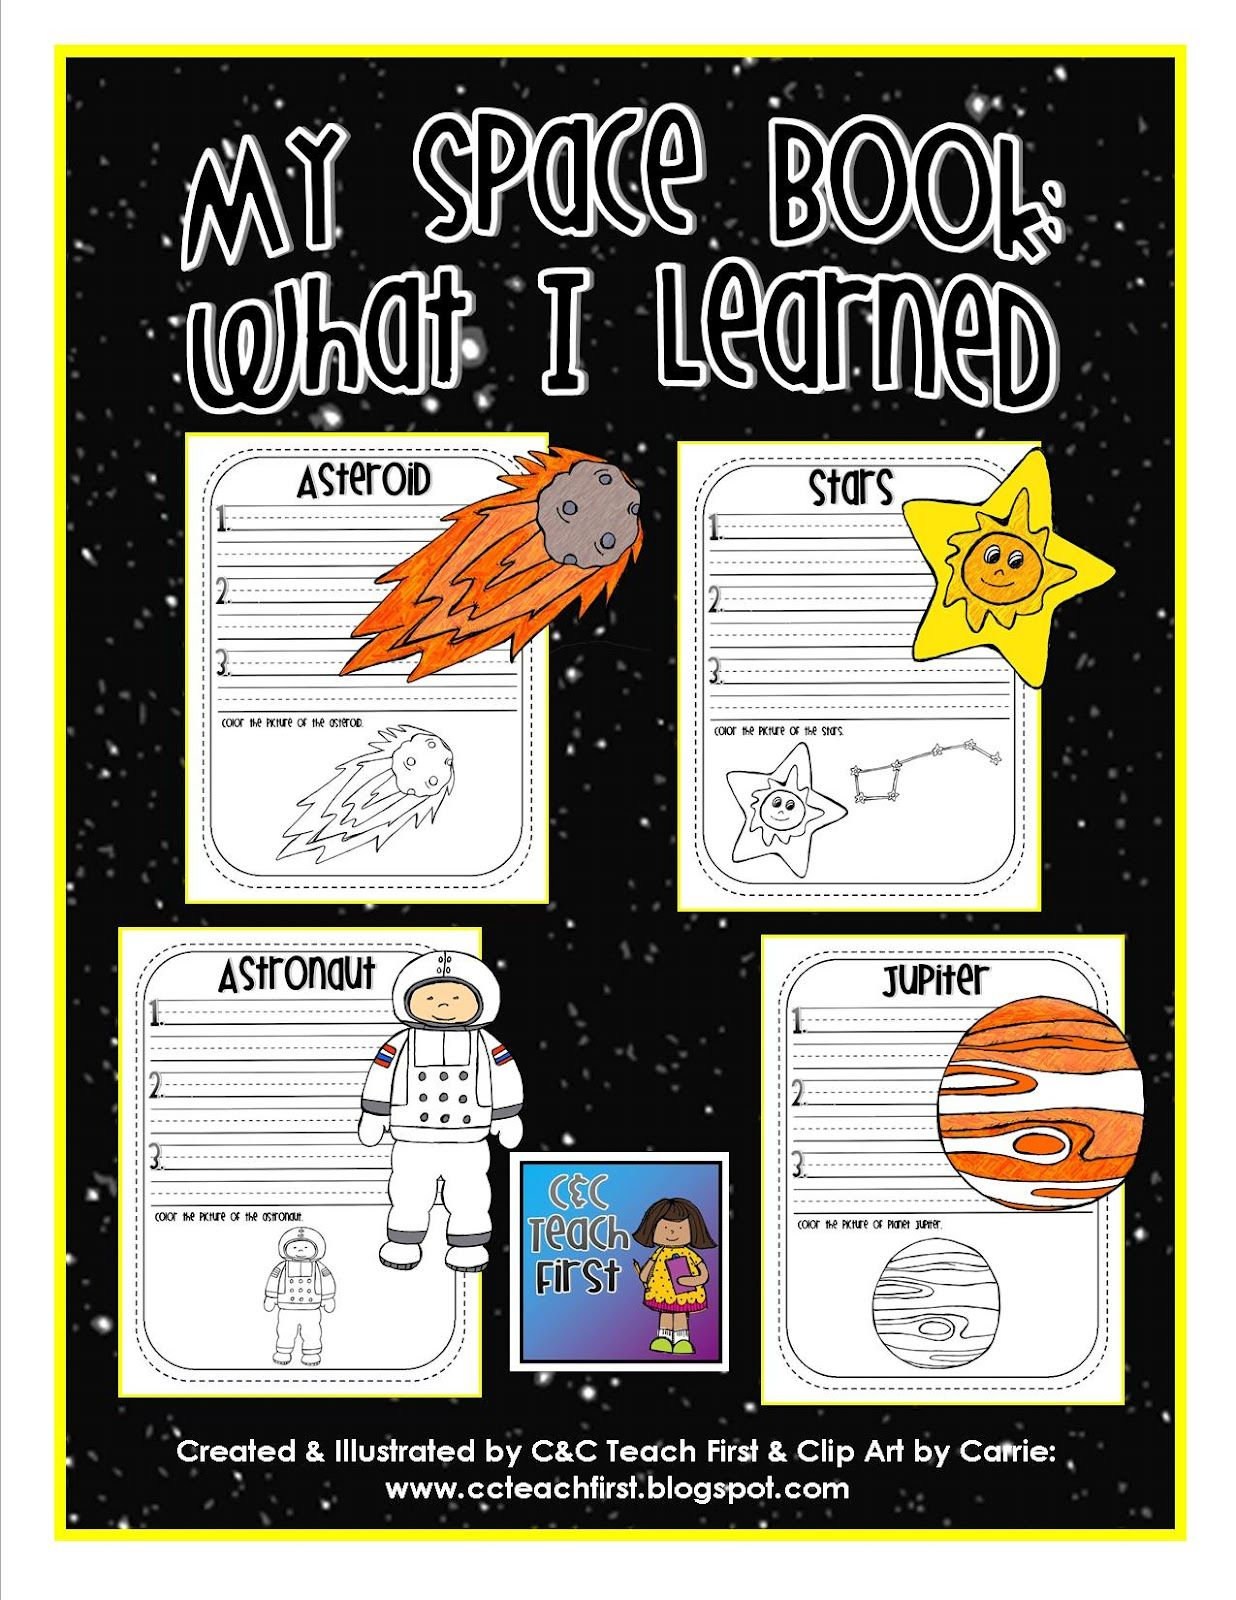 Asteroid clipart solar system space. My book includes facts